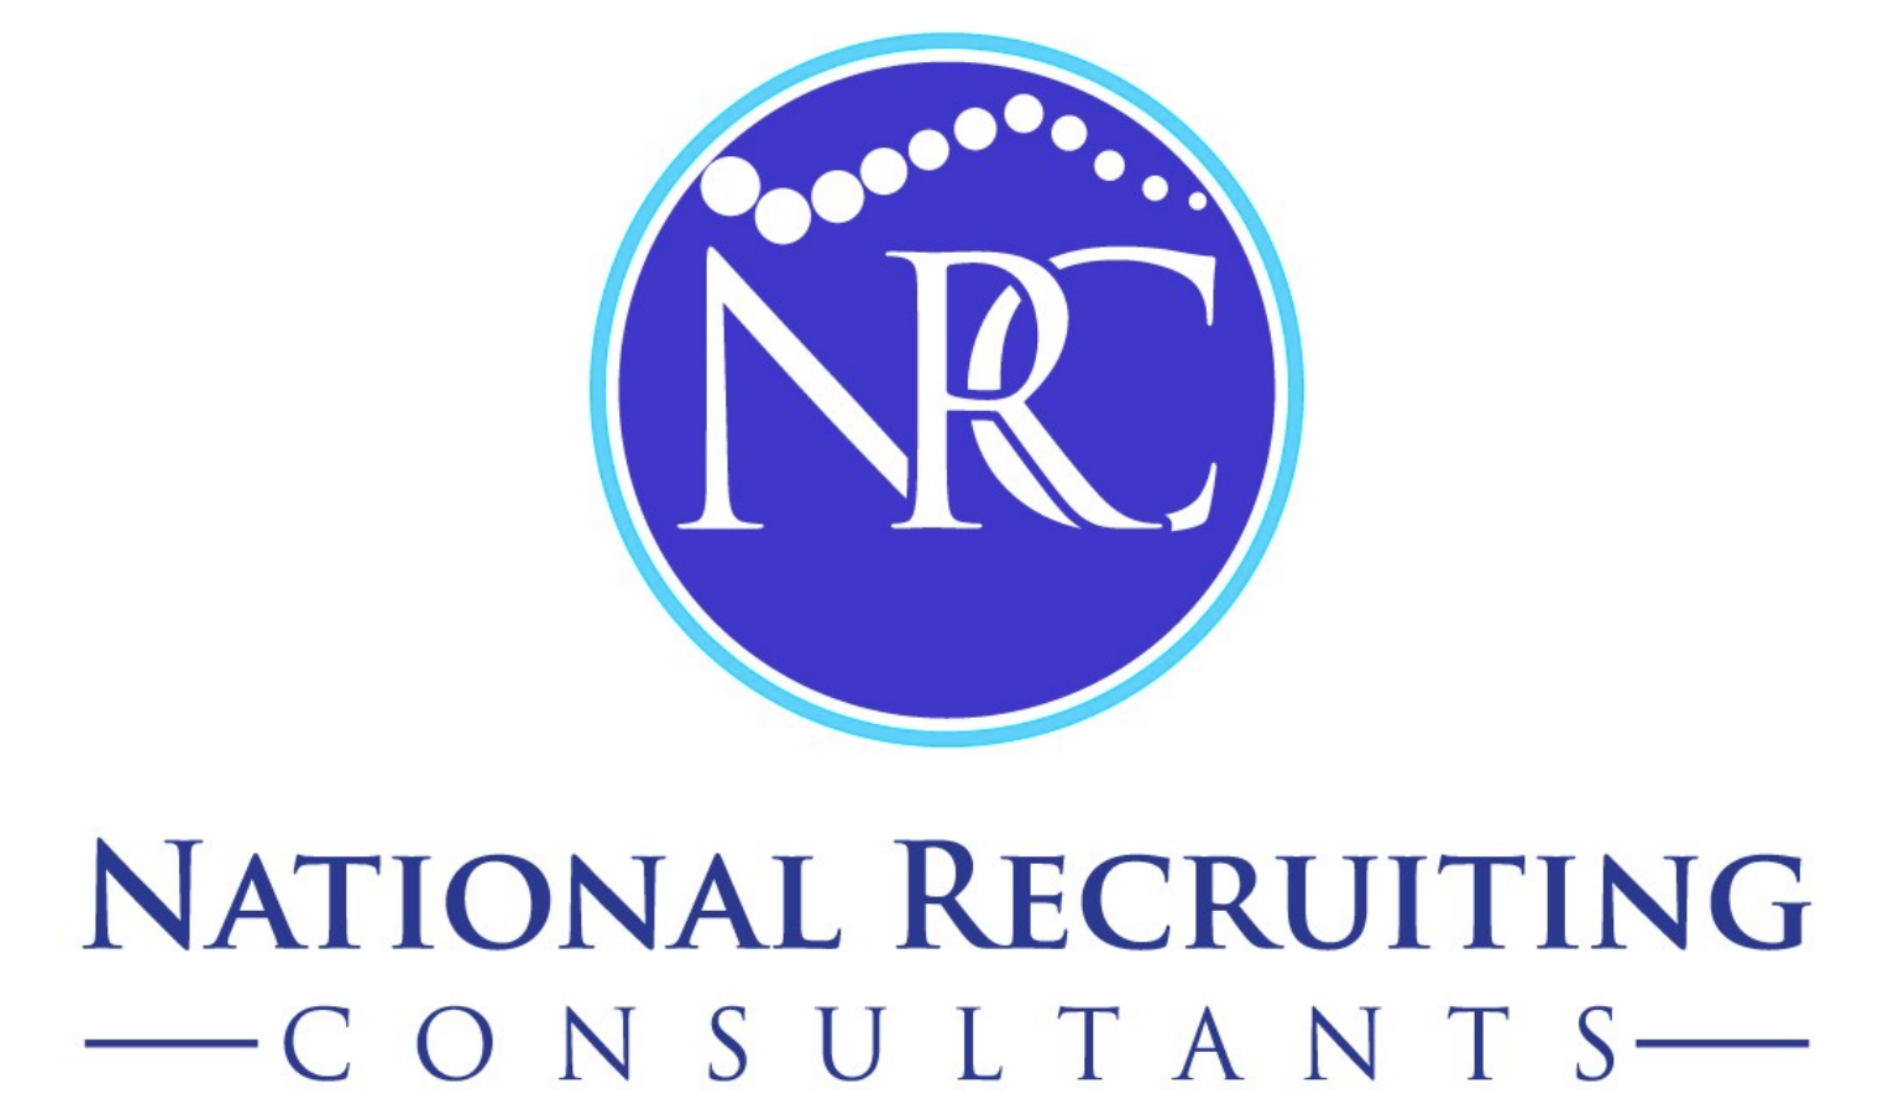 National Recruiting Consultants